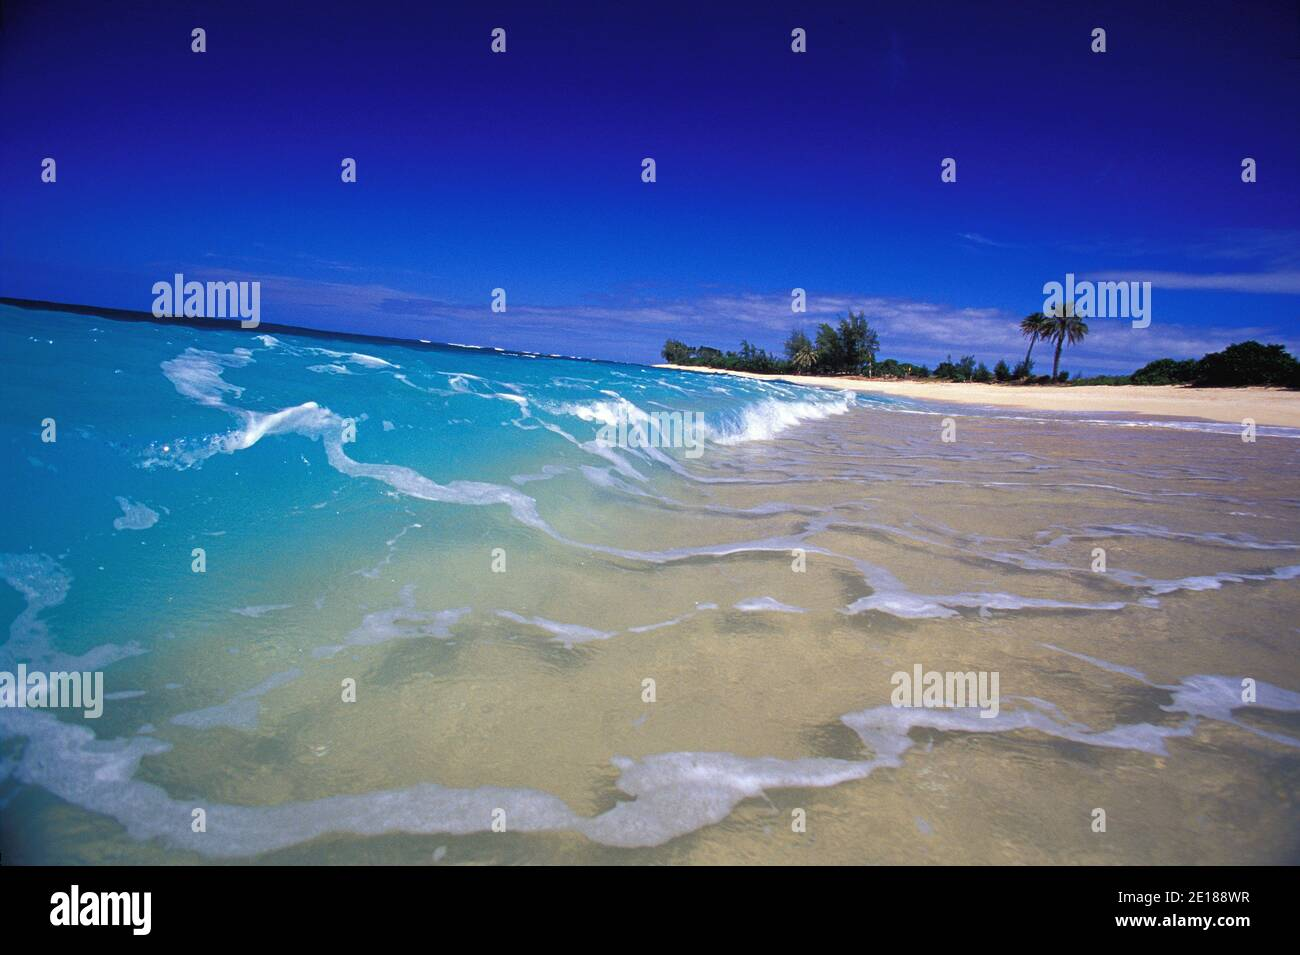 Waves breaking in clear blue water on white sand beach, Velzyland, North Shore, Oahu Banque D'Images